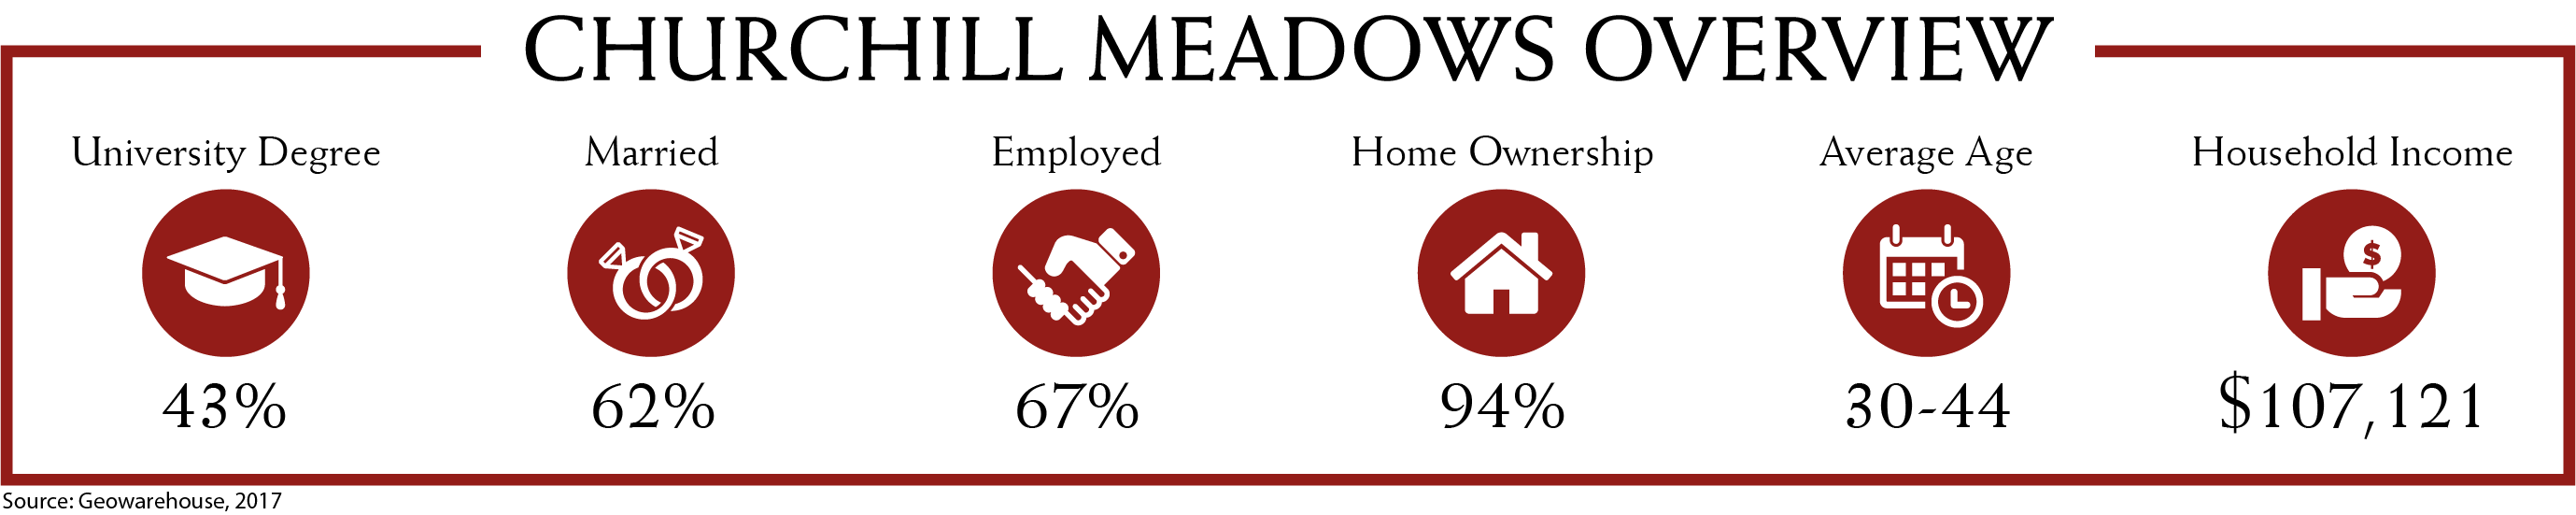 Churchill Meadows Demographics